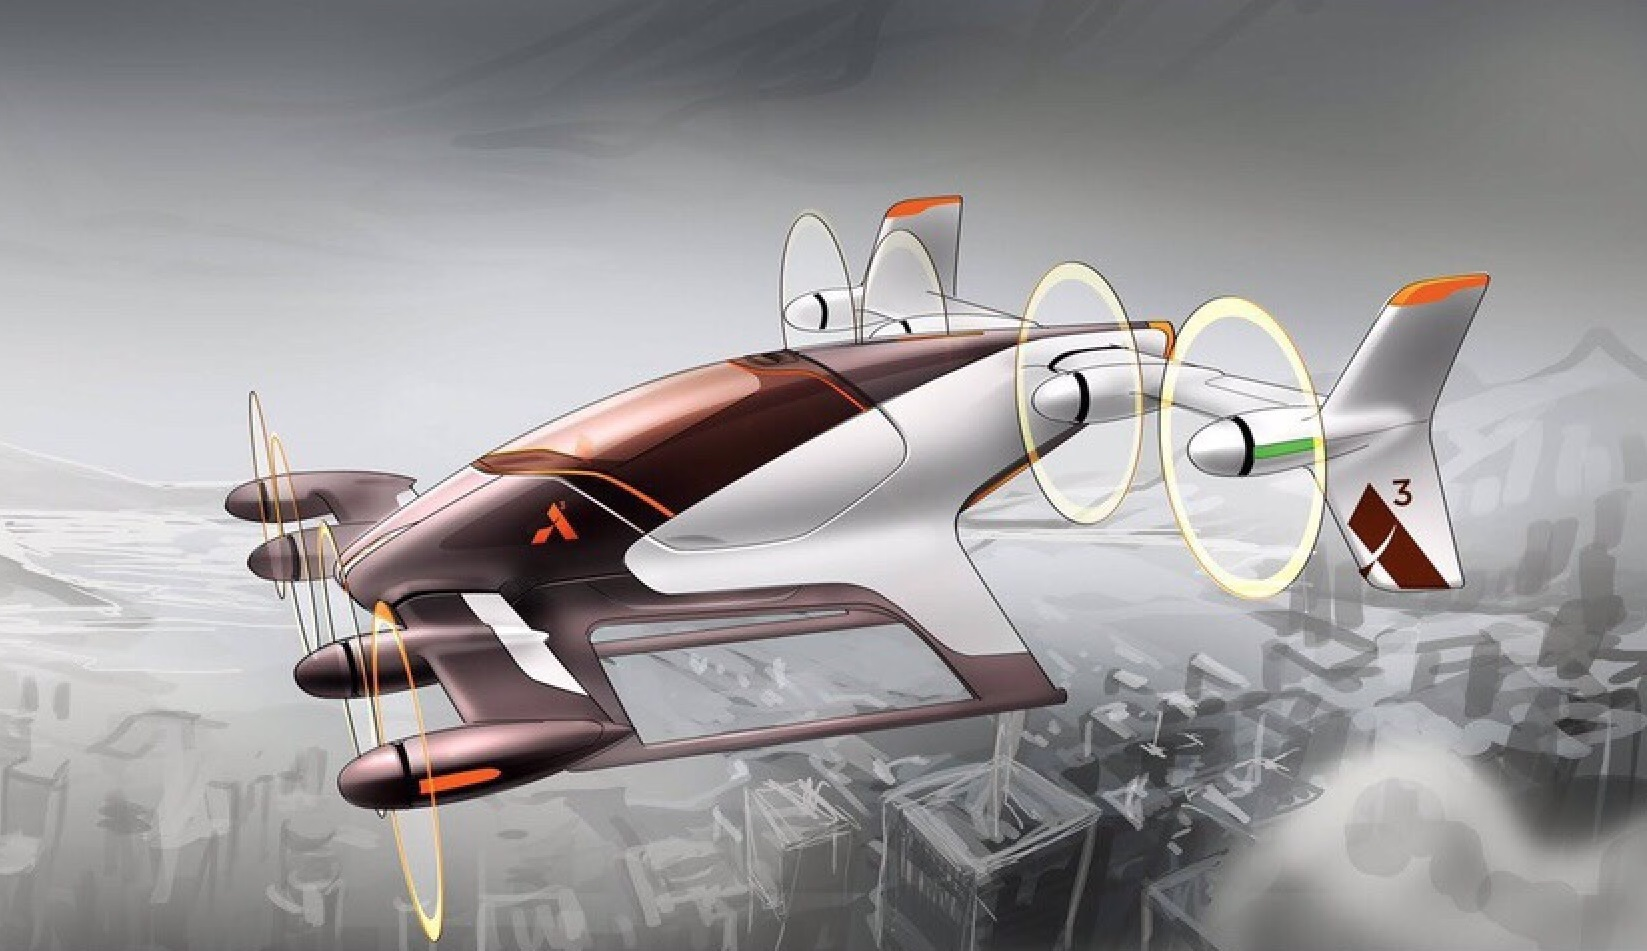 The company's Silicon valley branch is working on helicopter-inspired transport for single passengers.